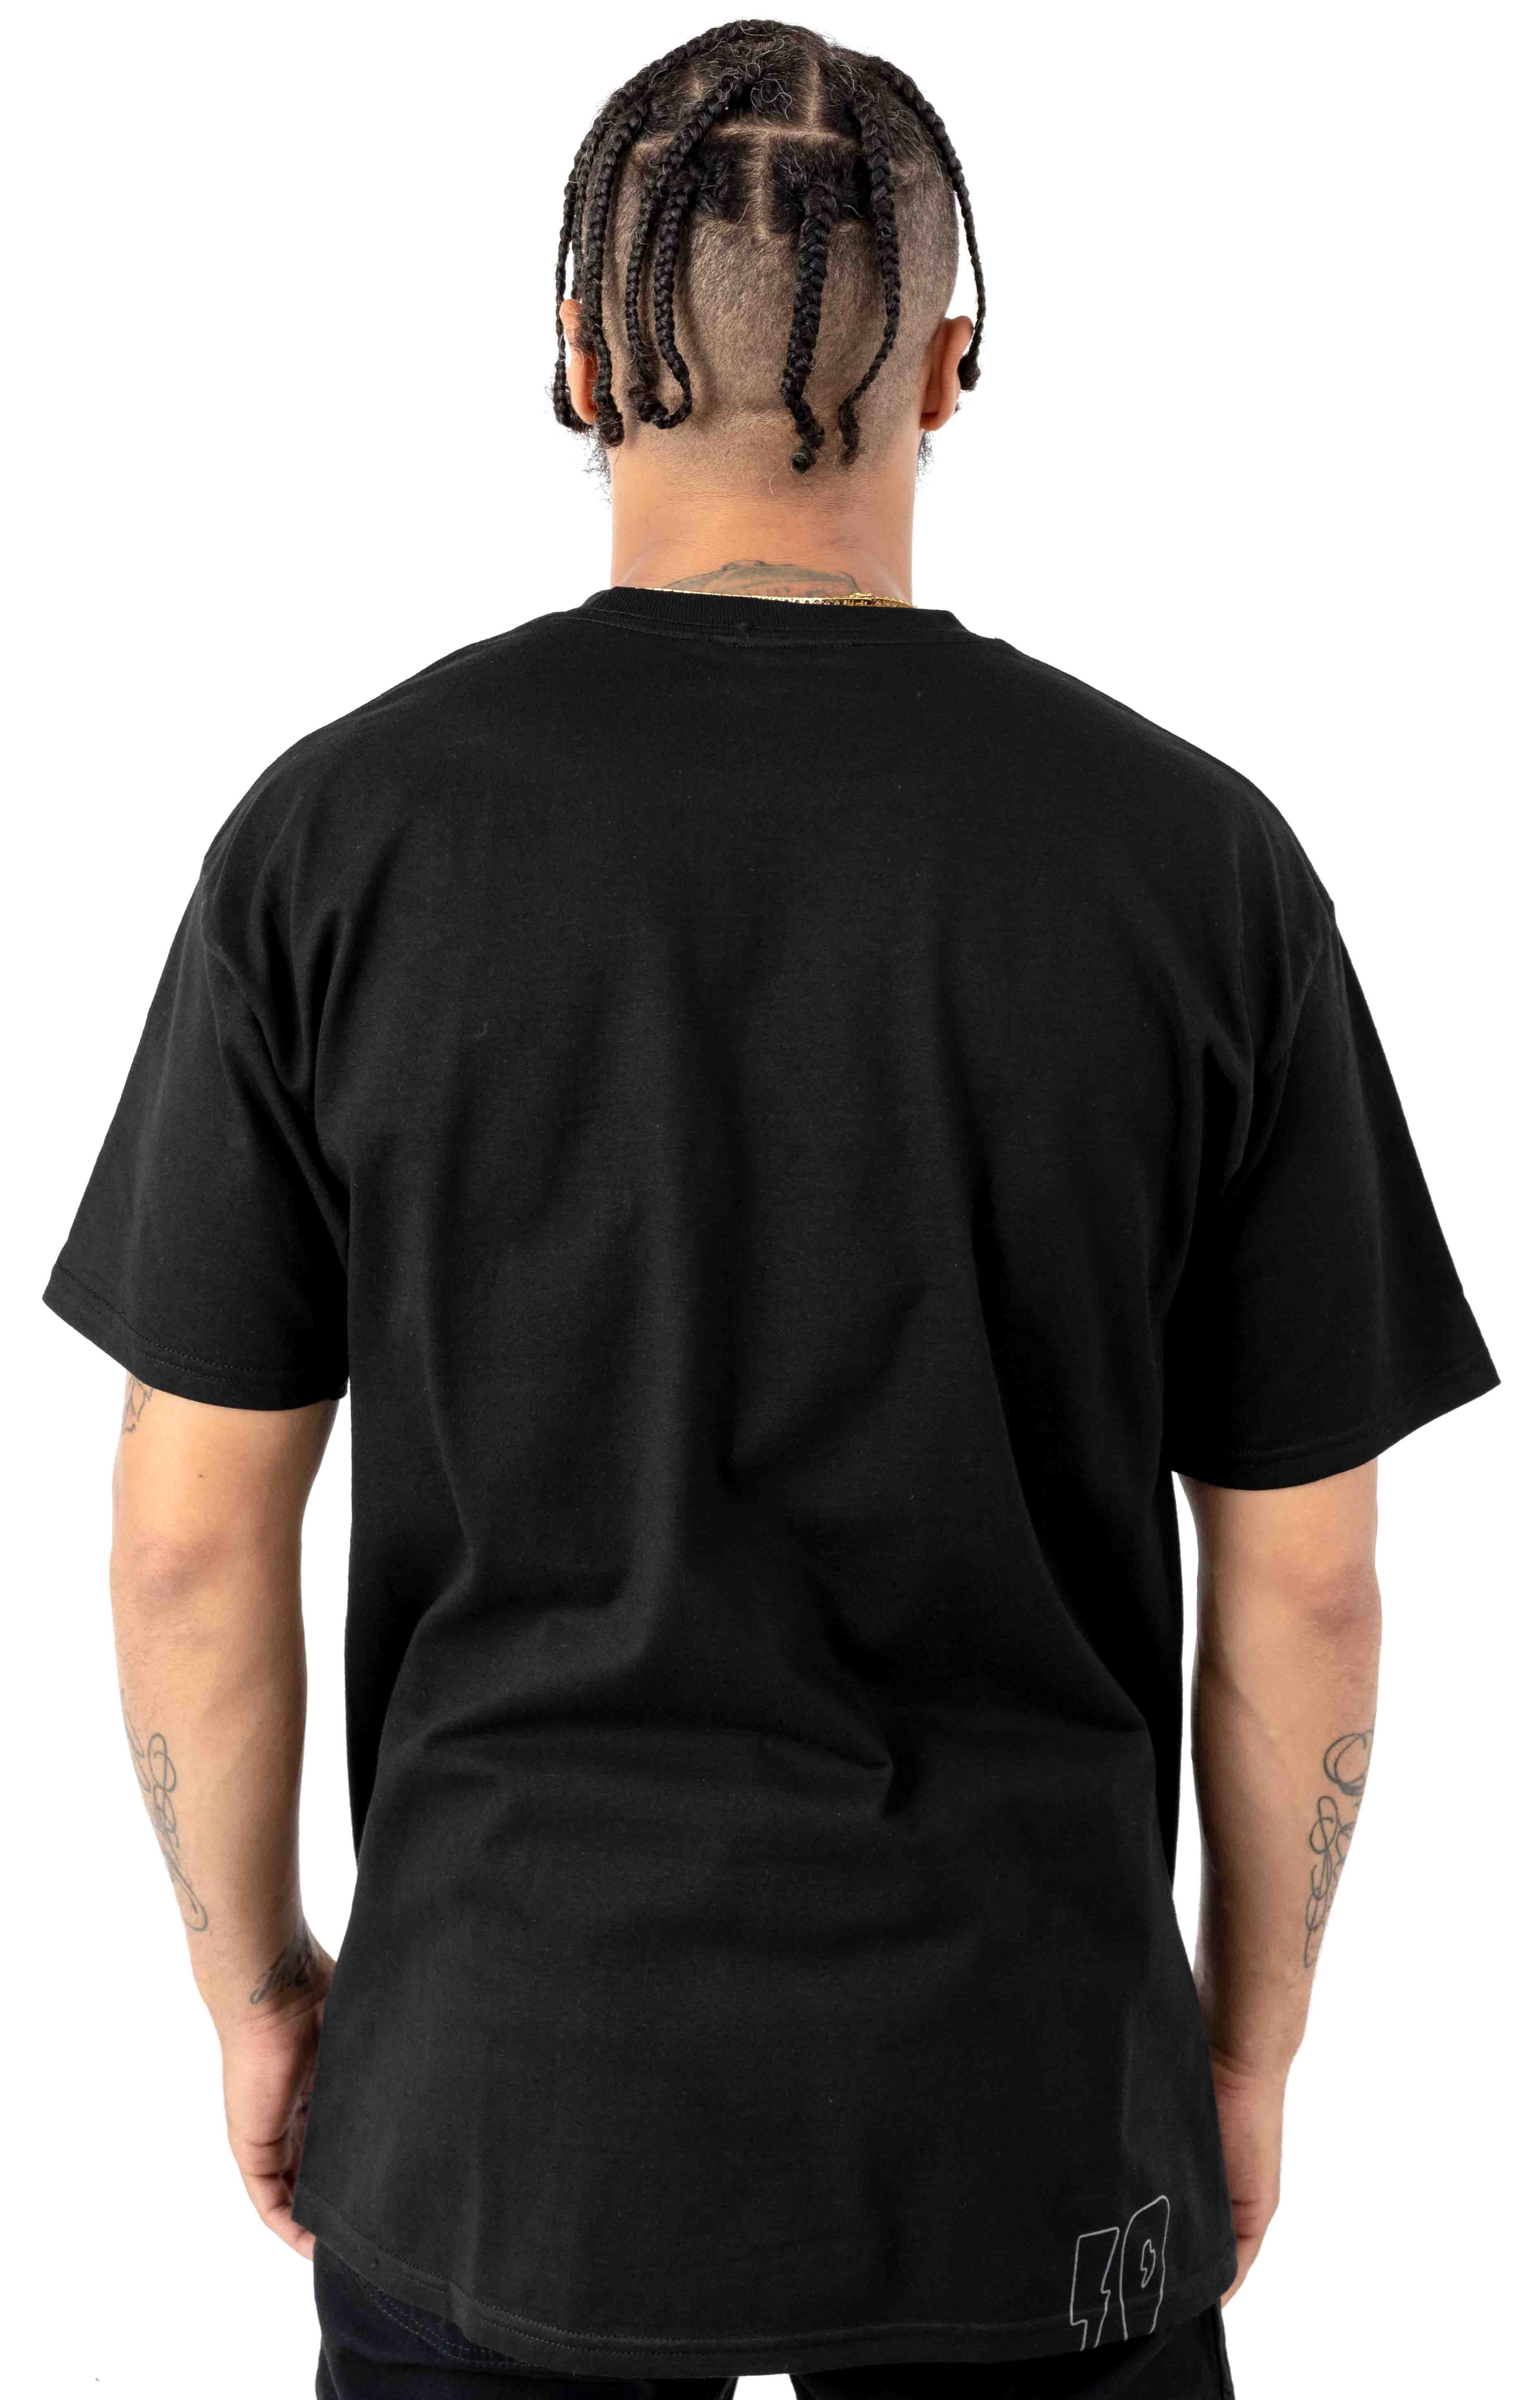 Altered State T-Shirt - Black  3